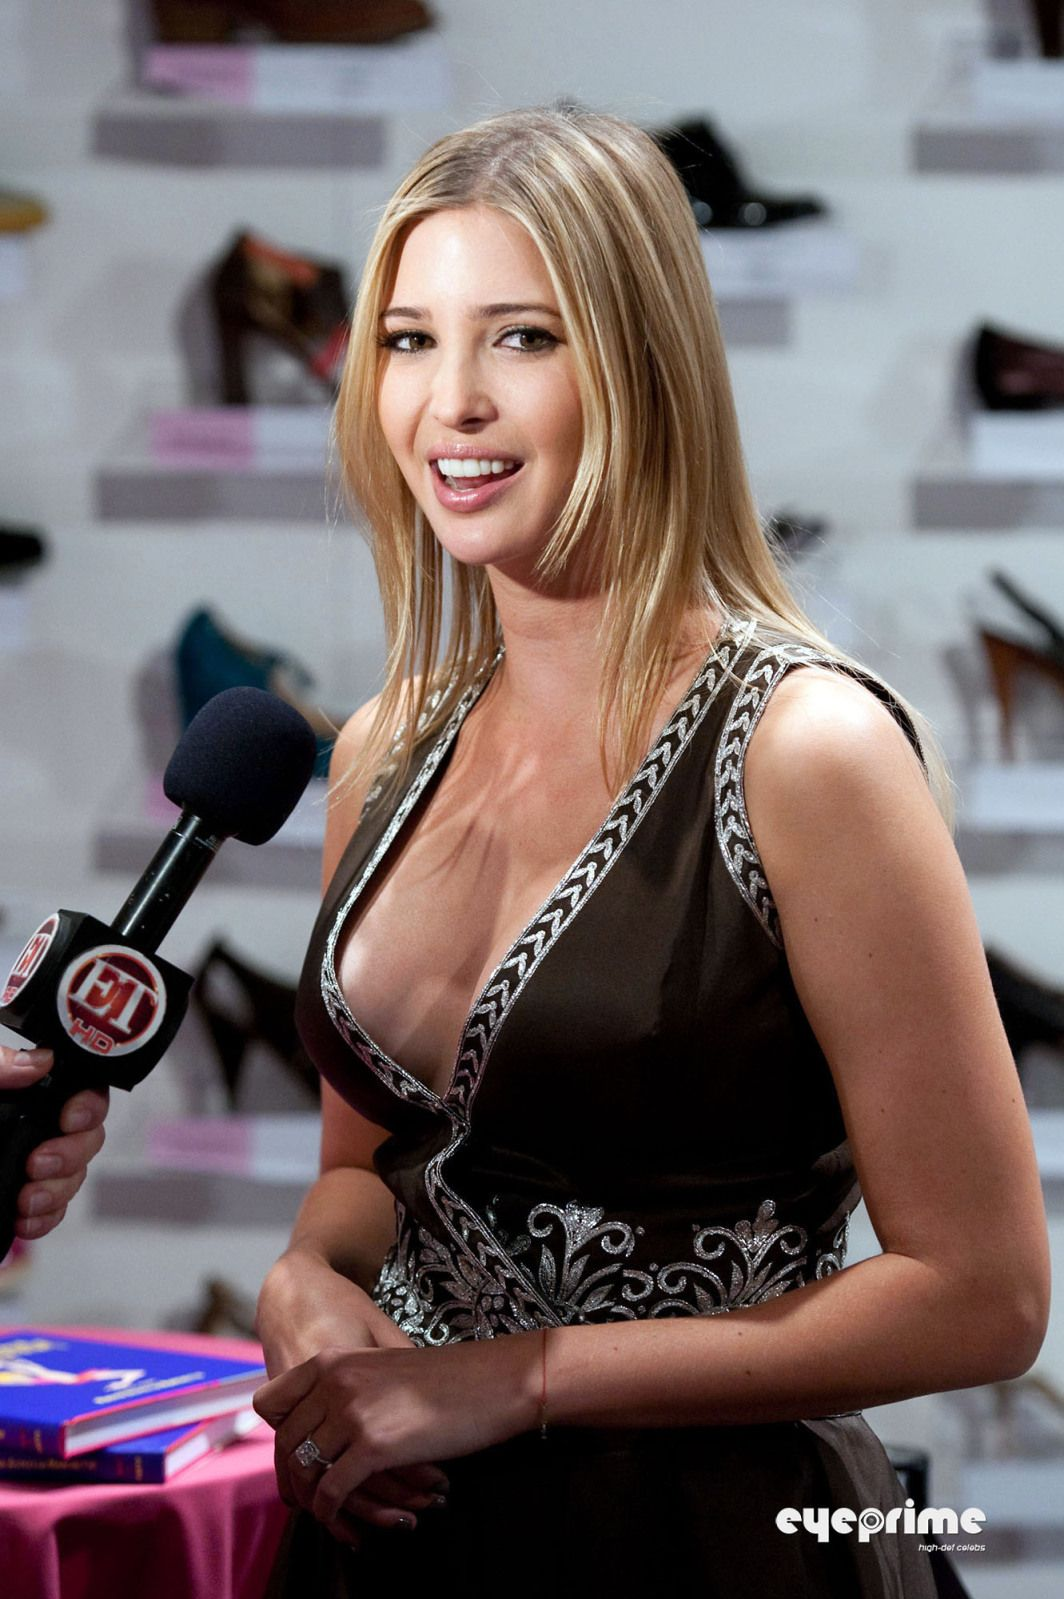 ivanka trump туфлиivanka trump instagram, ivanka trump туфли, ivanka trump одежда, ivanka trump bags, ivanka trump style, ivanka trump collection, ivanka trump young, ivanka trump brand, ivanka trump interview, ivanka trump бренд, ivanka trump wiki, ivanka trump размерная сетка, ivanka trump dresses, ivanka trump wikipedia, ivanka trump 2017, ivanka trump book, ivanka trump wedding dress, ivanka trump age, ivanka trump twitter, ivanka trump духи